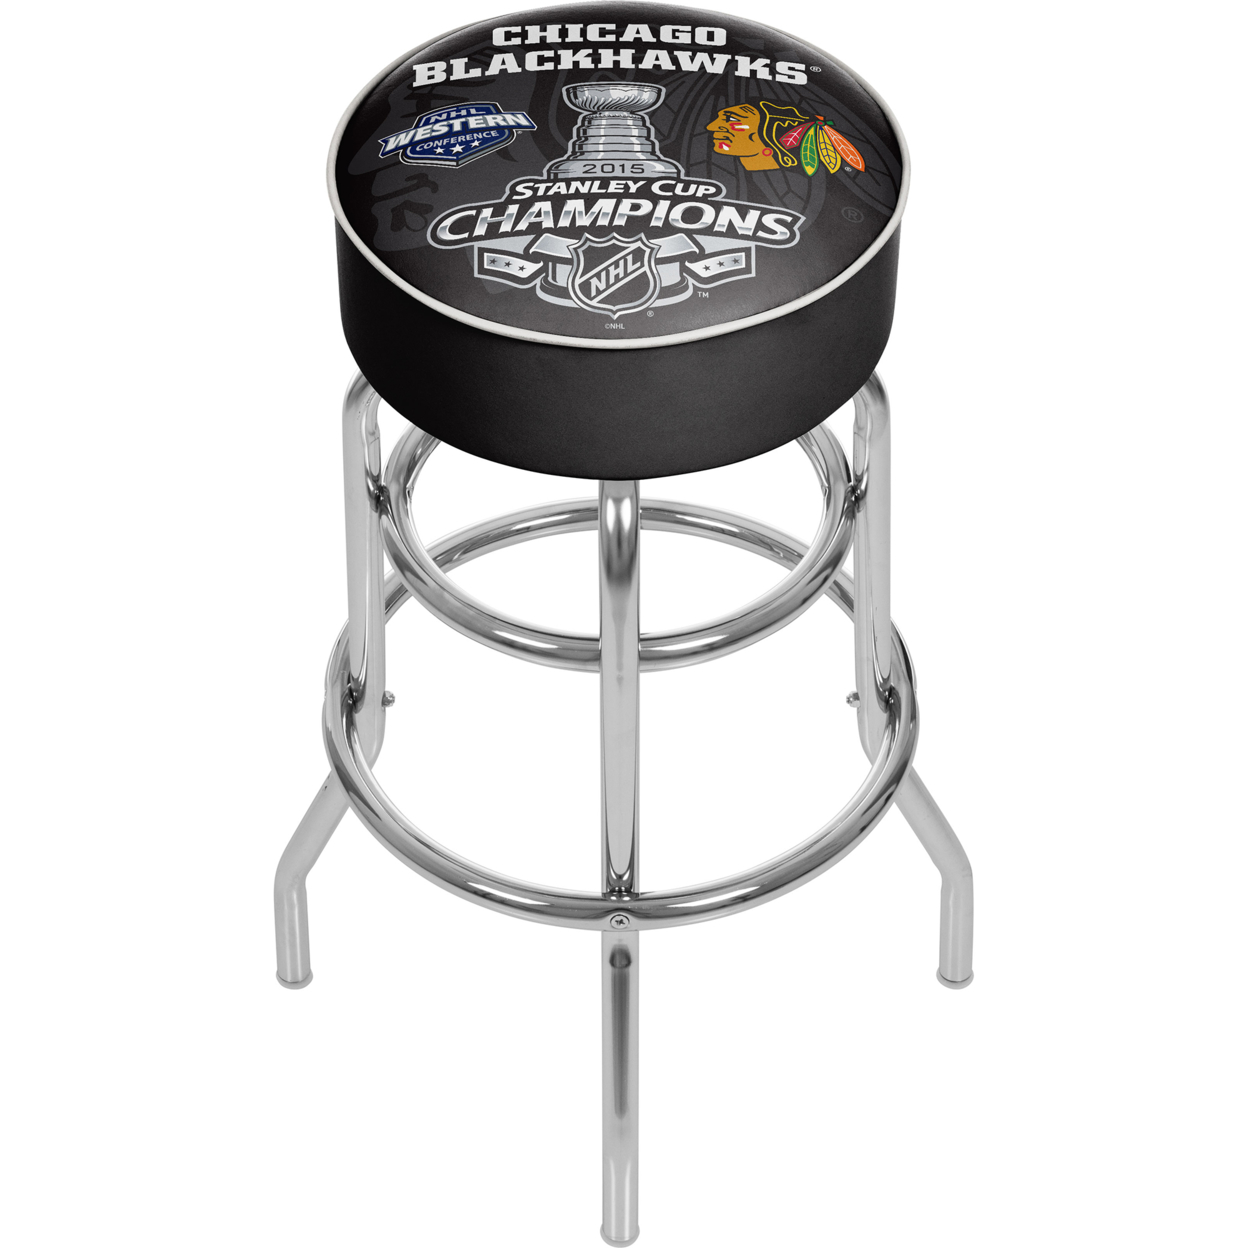 Chicago Blackhawks Swivel Bar Stool - 2015 Stanley Cup Champs floor style humidifier home mute bedroom high capacity office creative air aromatherapy machine fog volume fast efficient